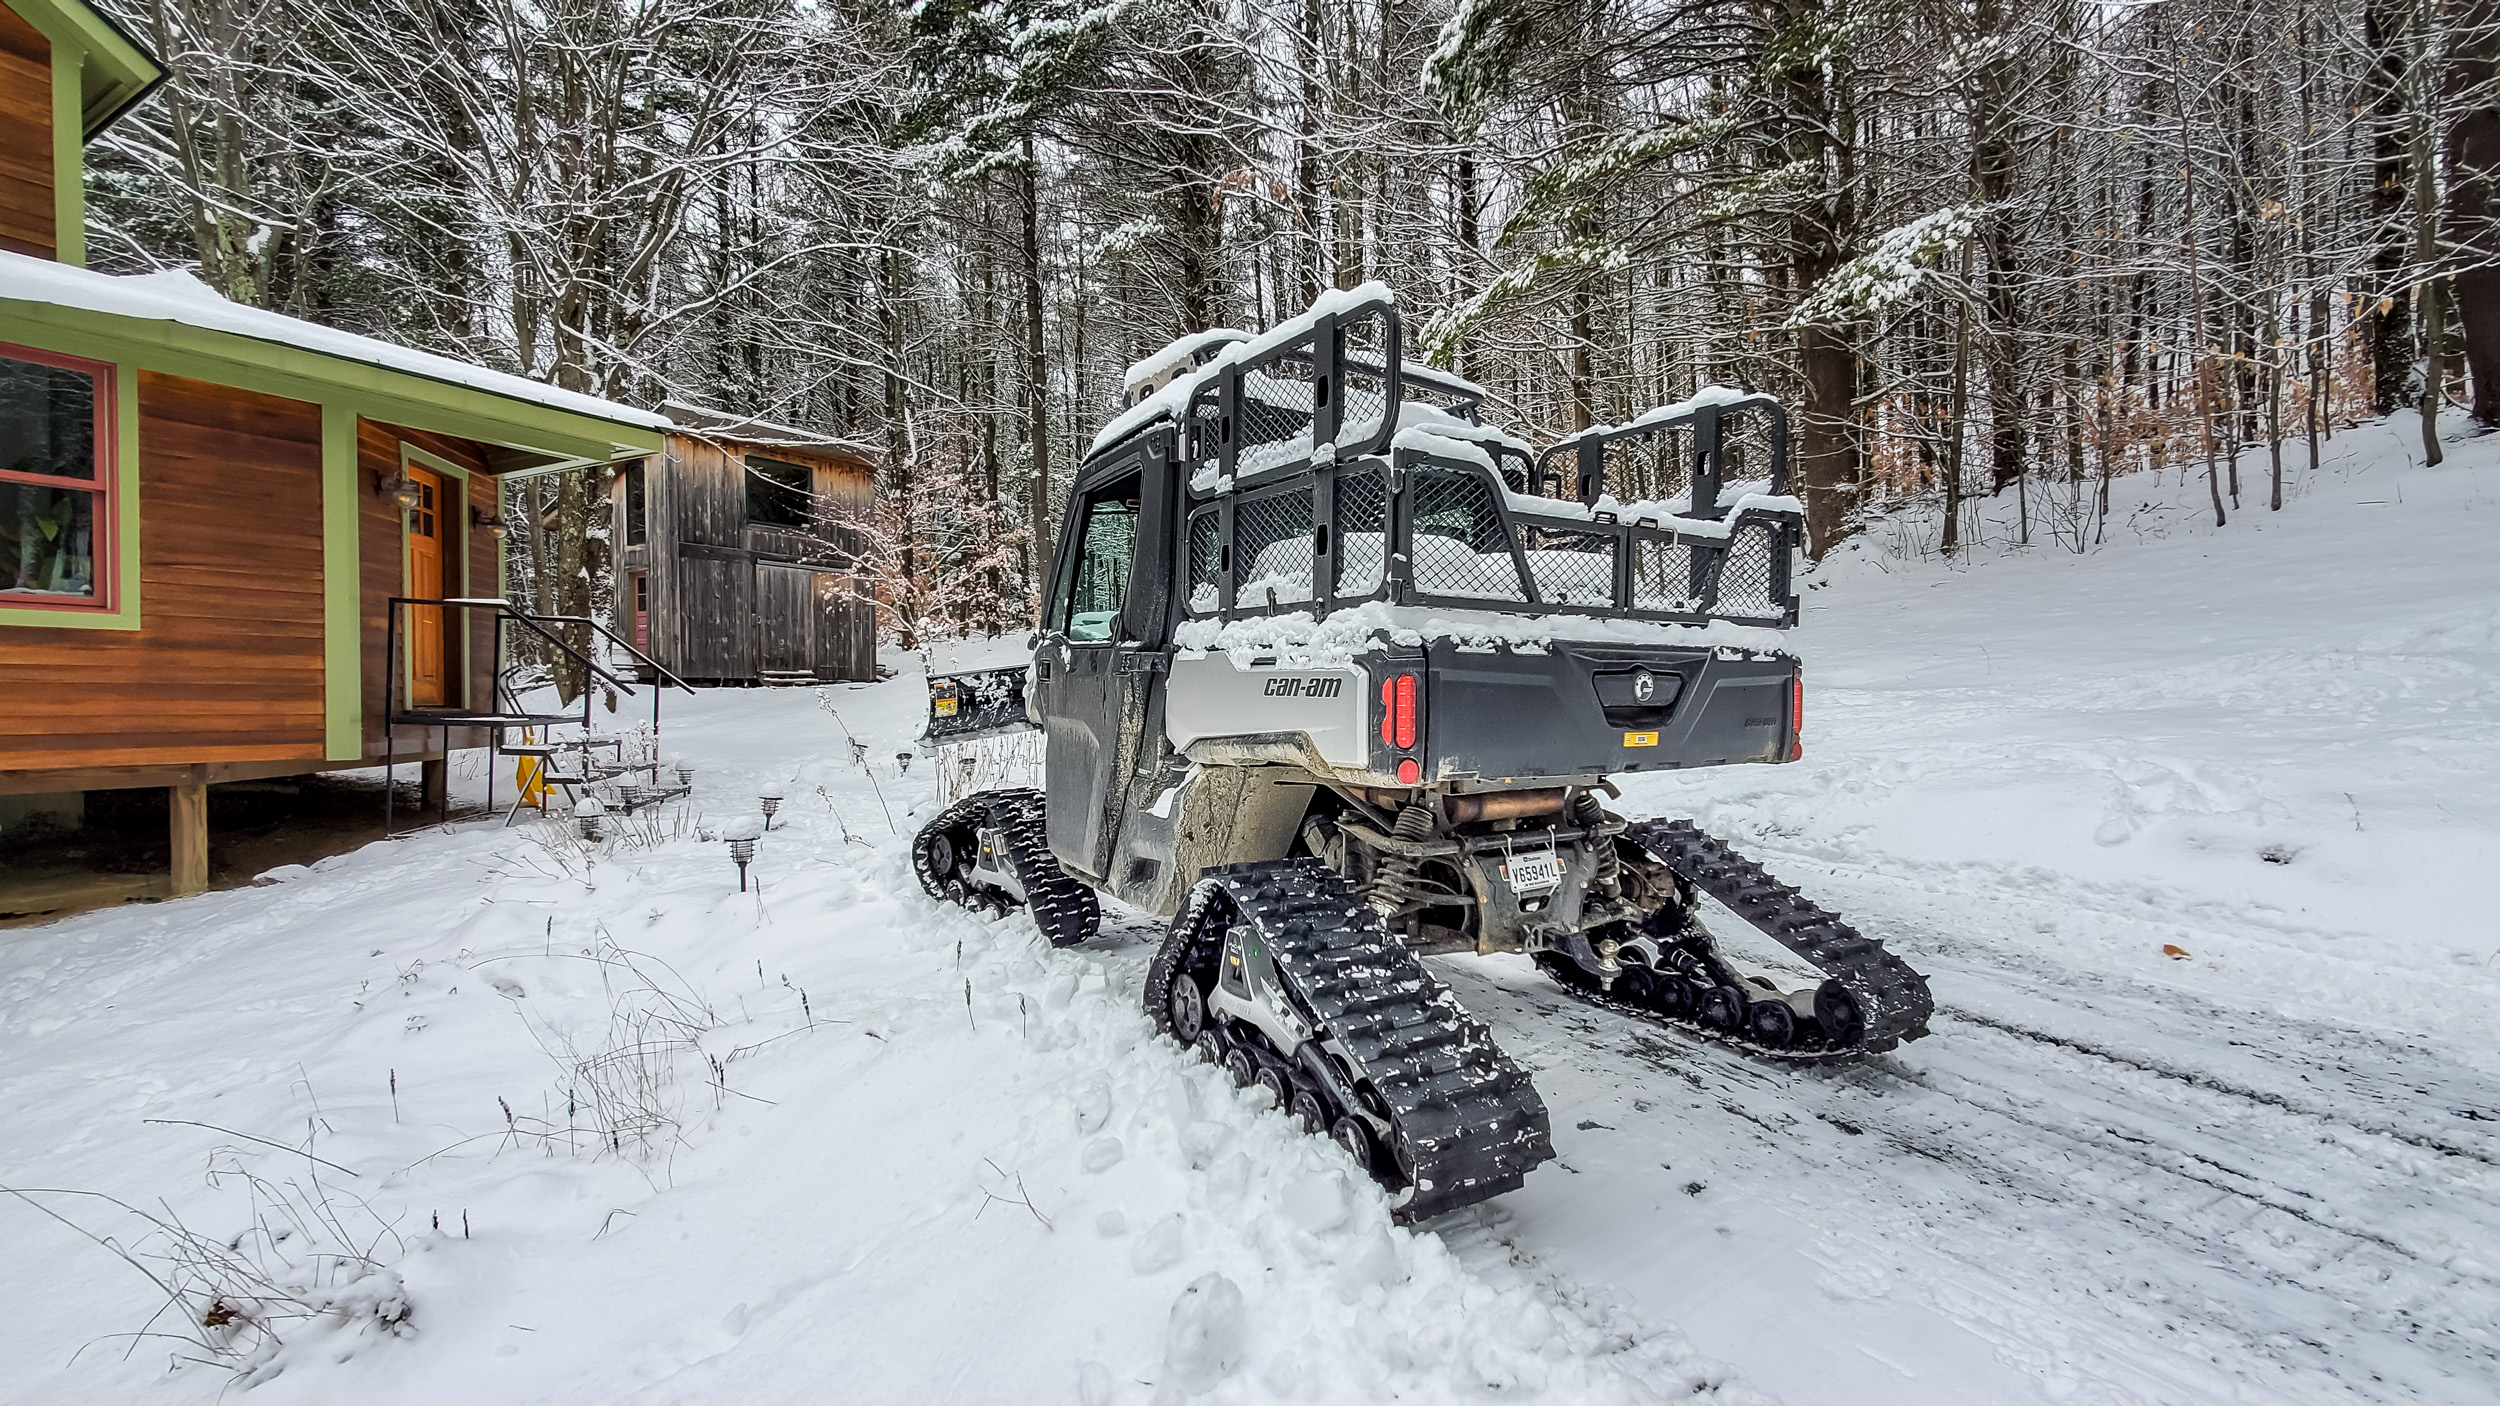 2021 Can-Am Defender Limited on tracks with plow rear